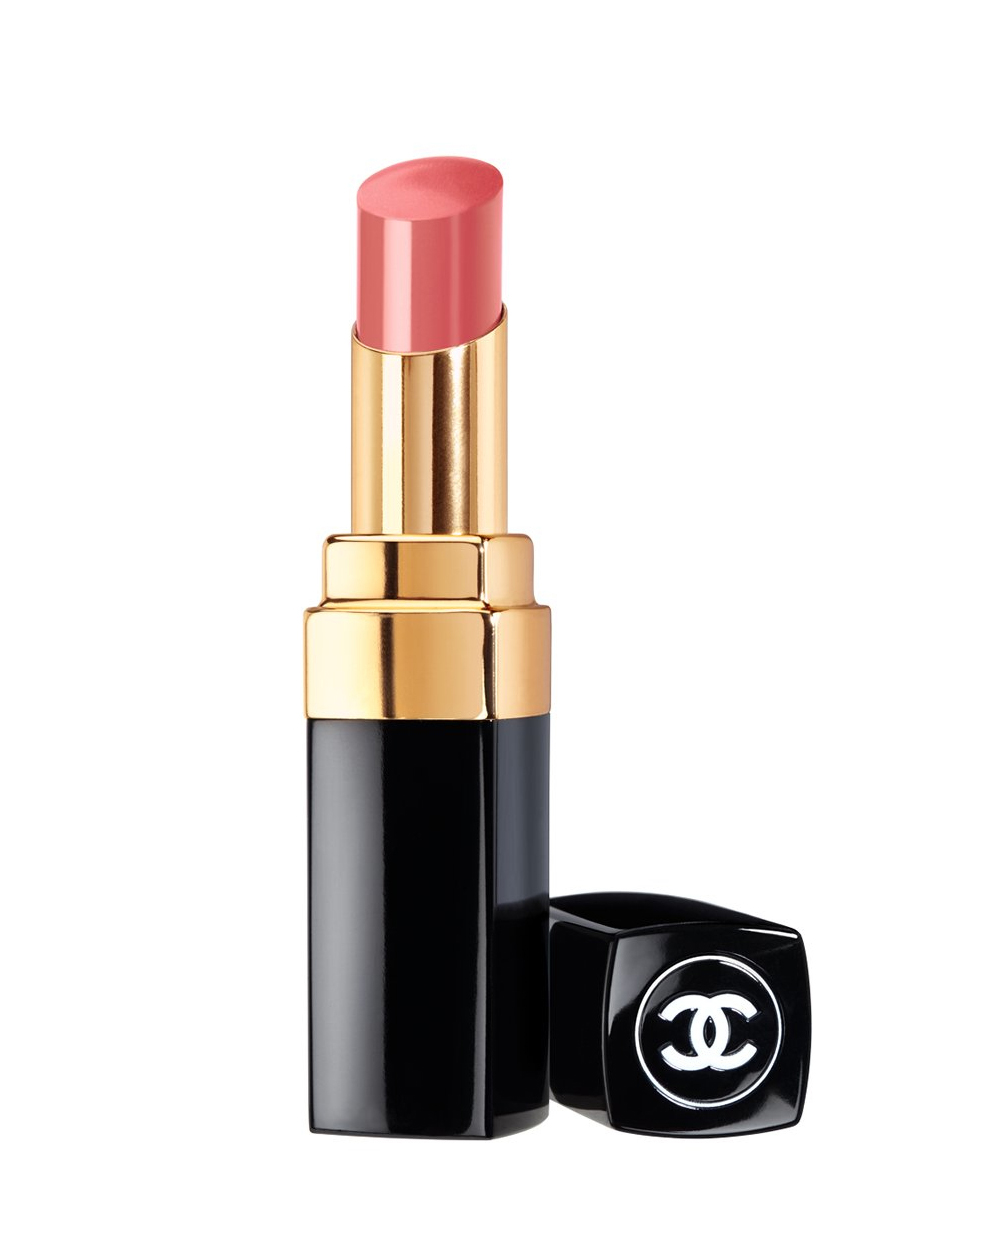 chanel-rougecocoshine-shadesaga-0814.jpg